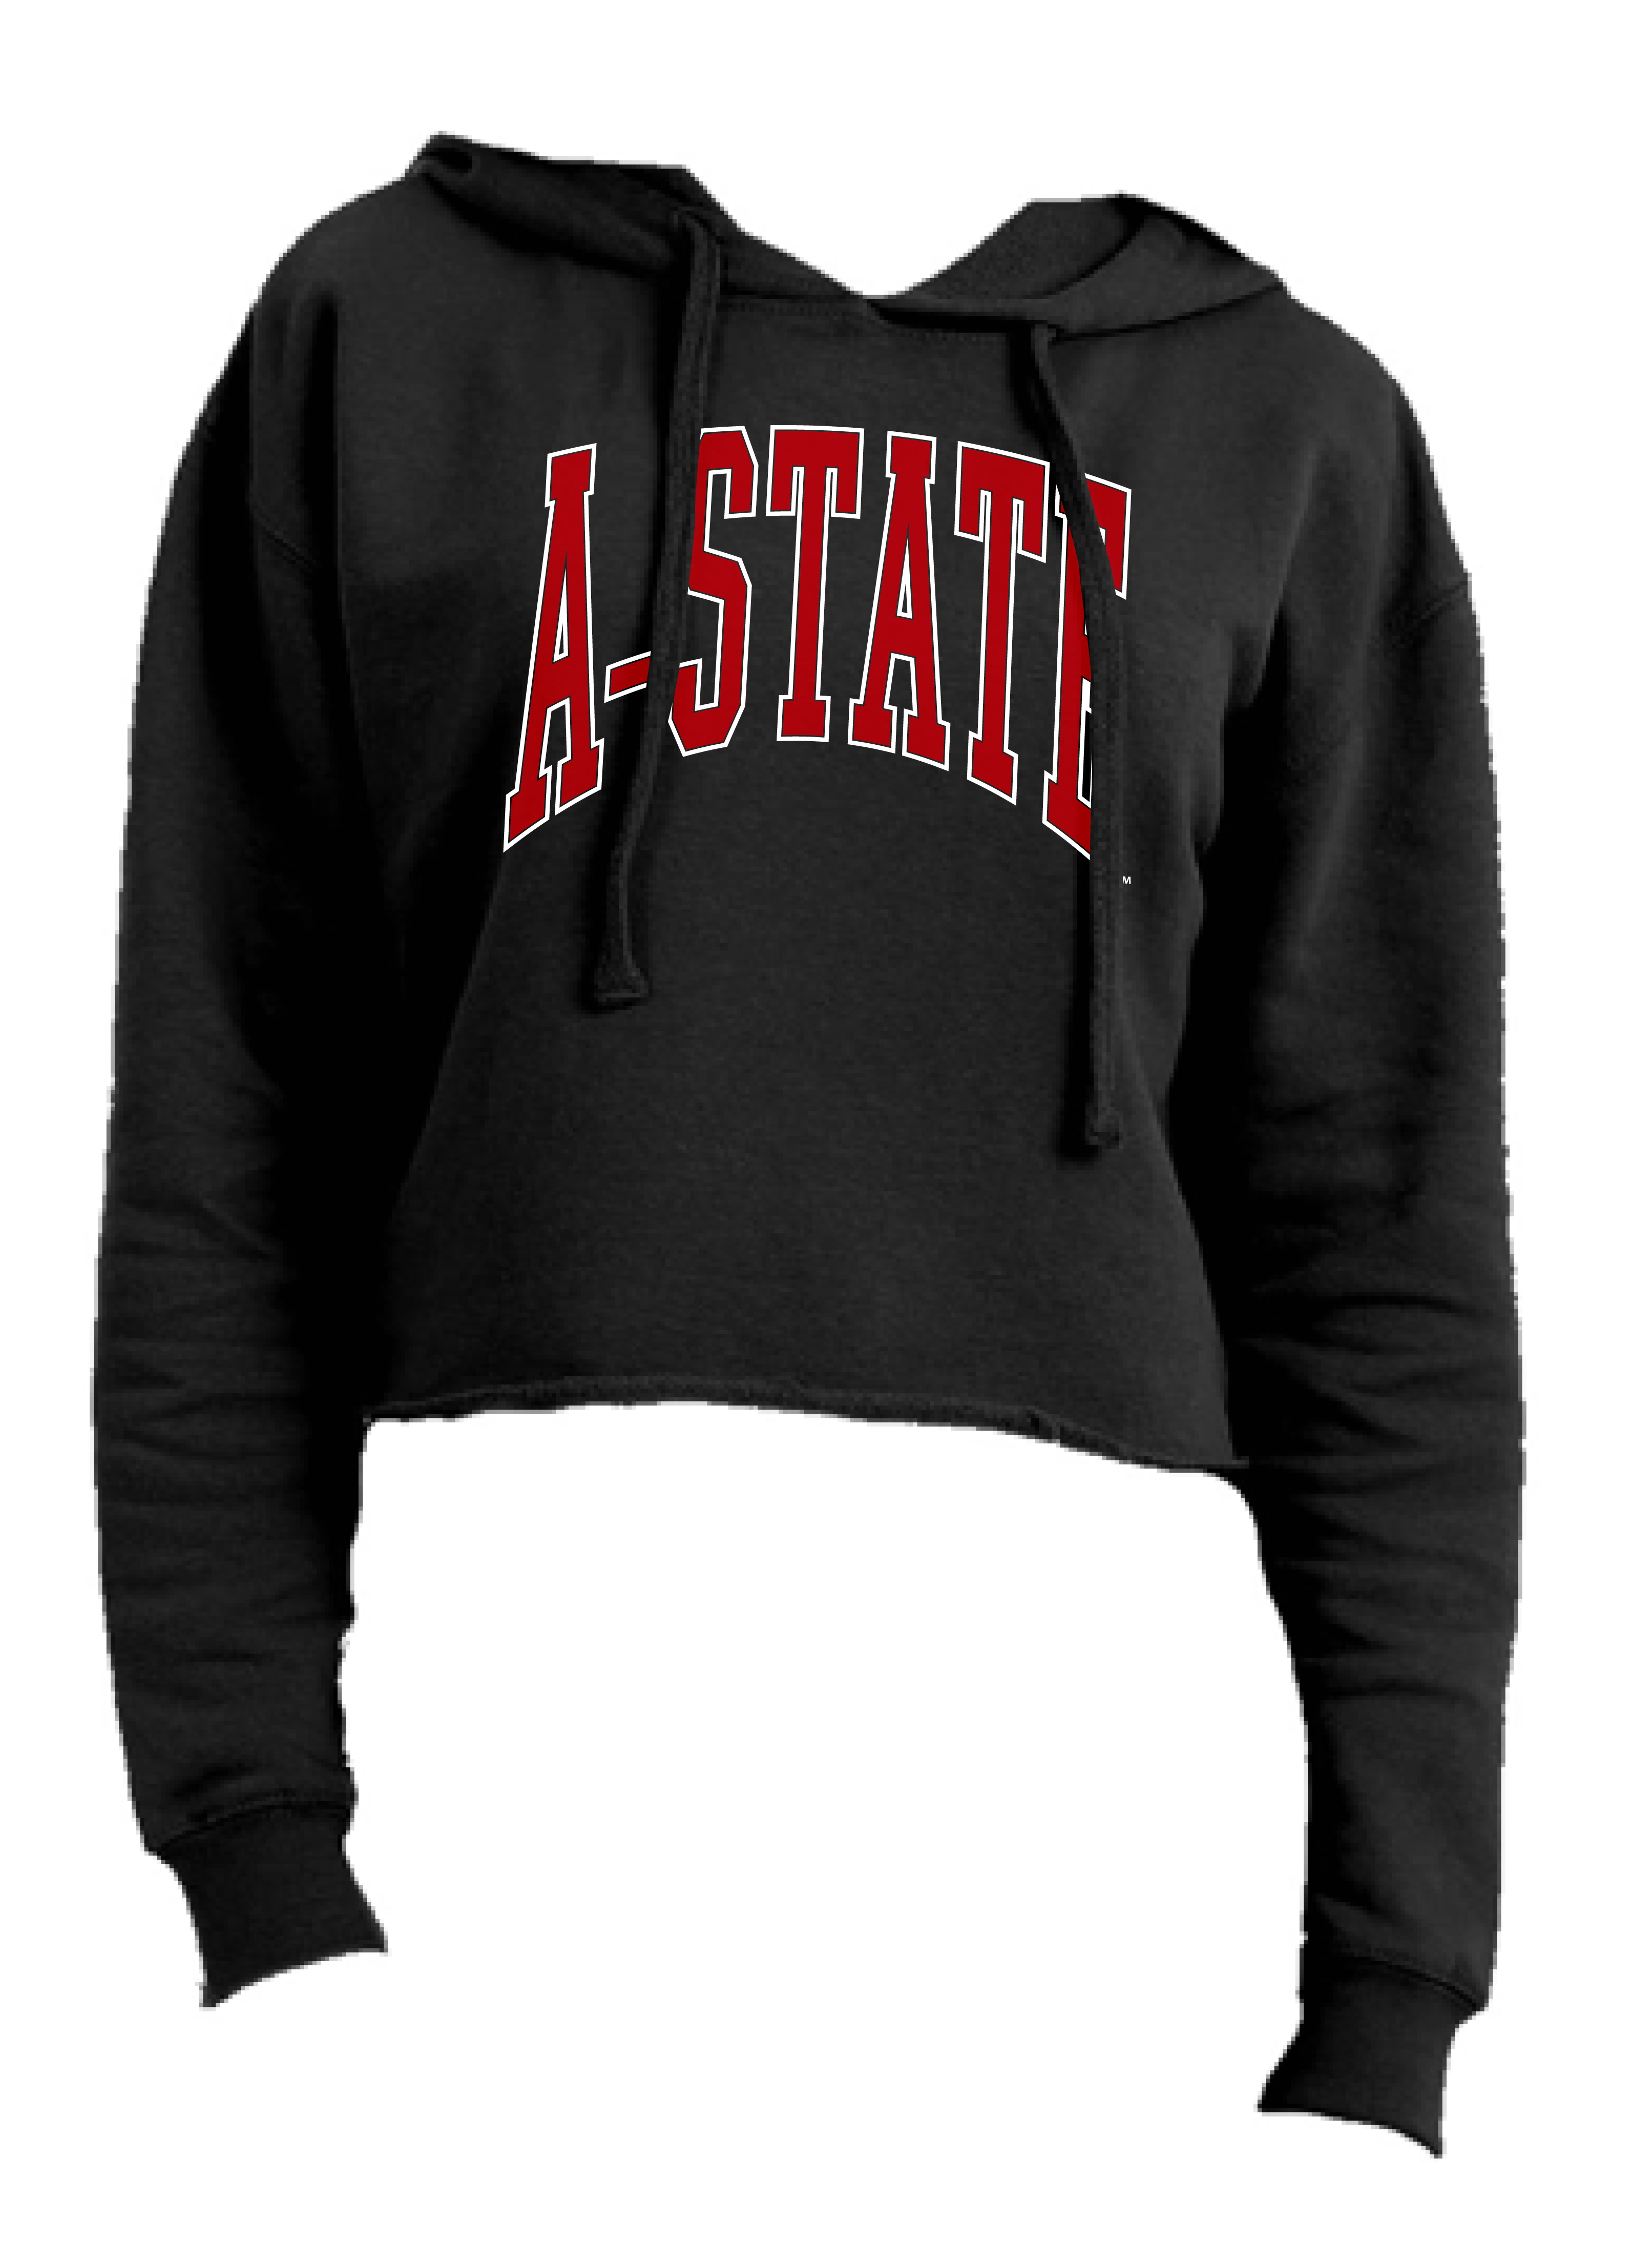 A-State Cropped Fleece Hoodie Sweatshirt